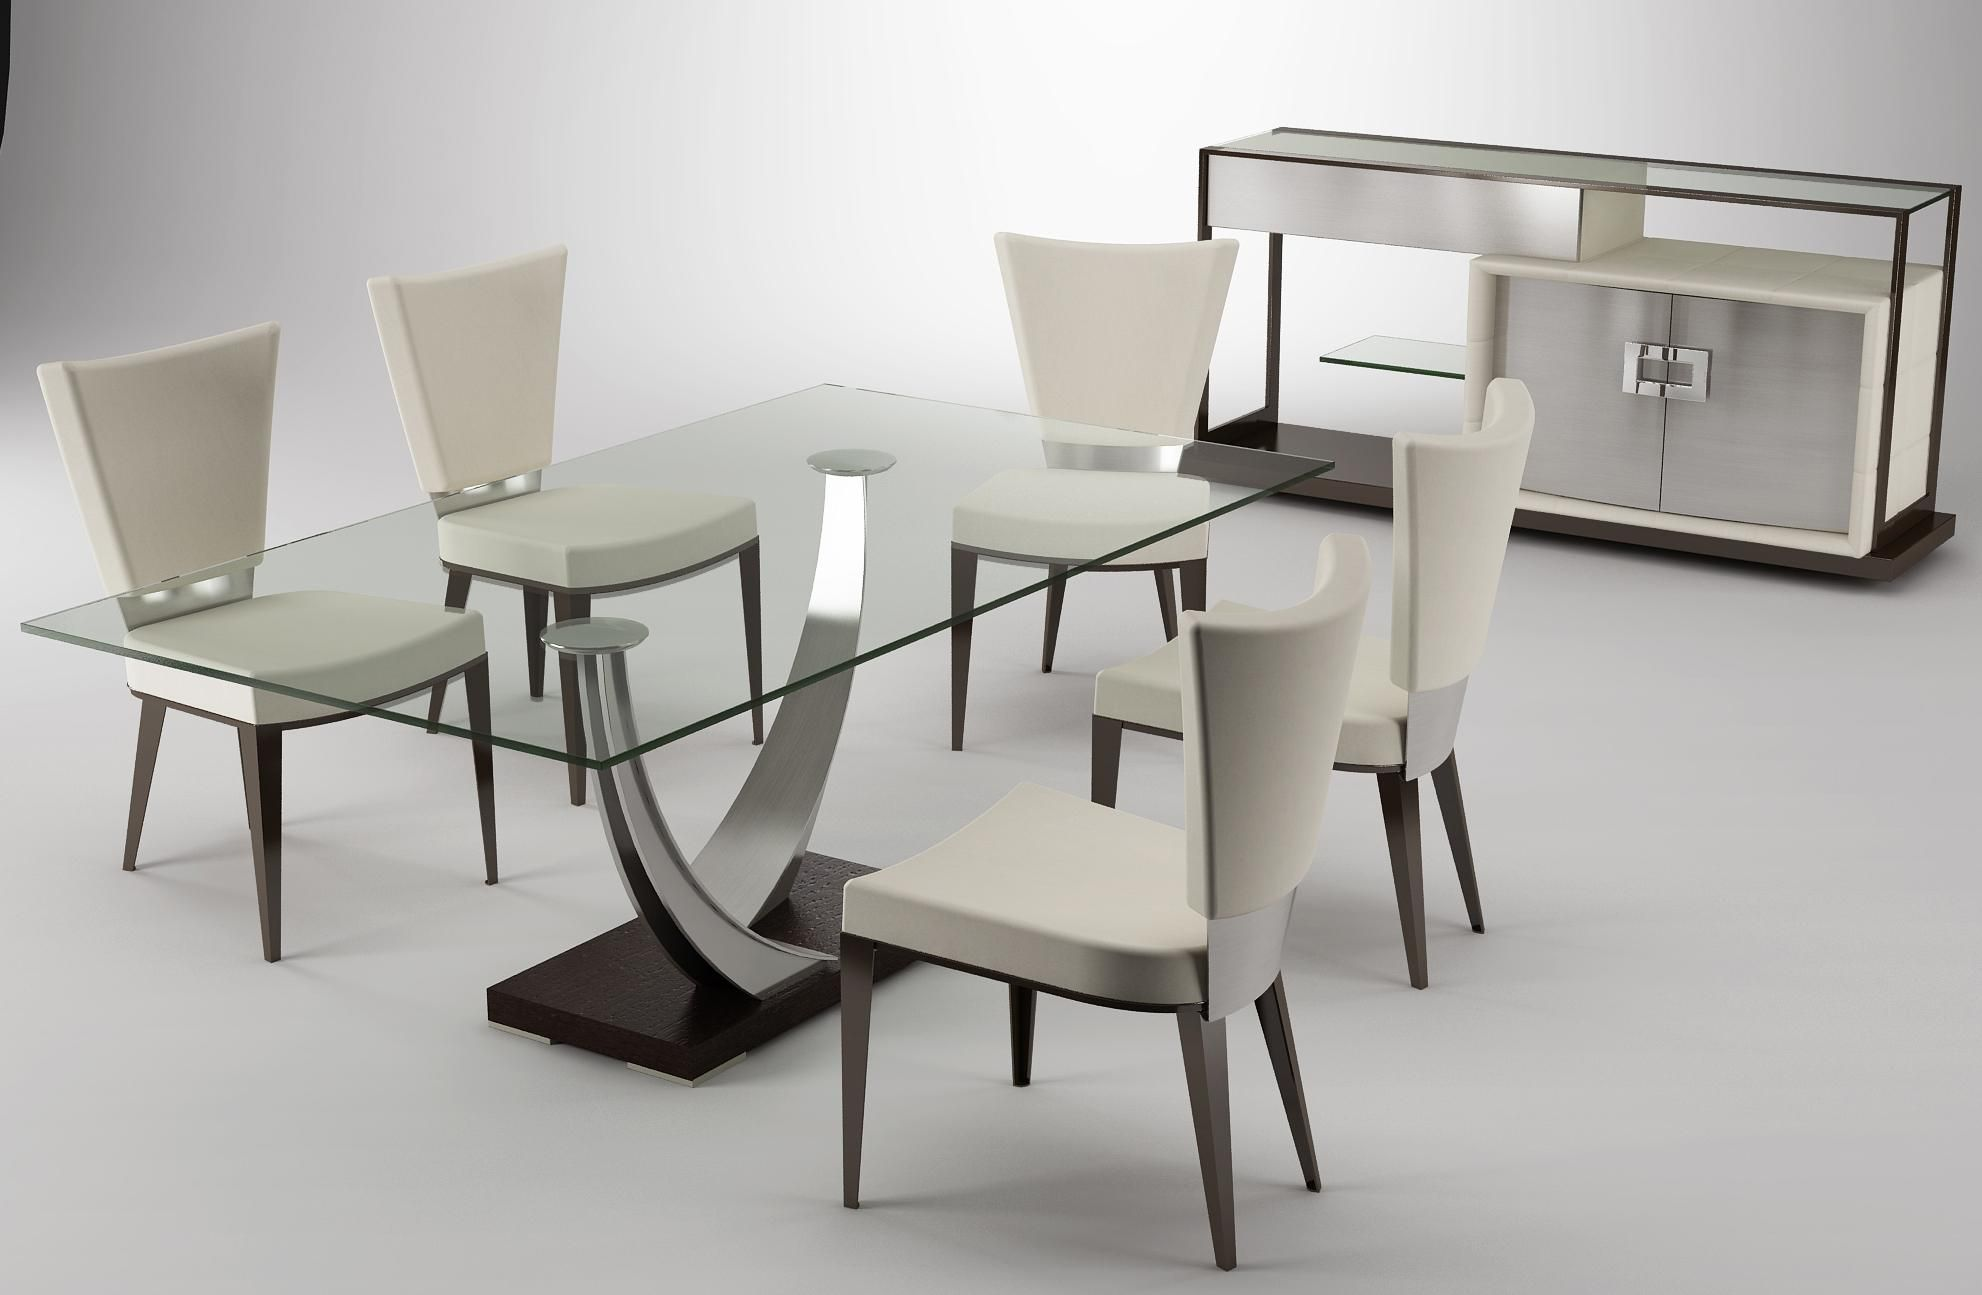 Modern dining room tables and chairs - Dining Room Table Sets Dining Table Design Glass Dining Table Modern Dining Room Table Sets Dining Table Design Glass Dining Table Modern